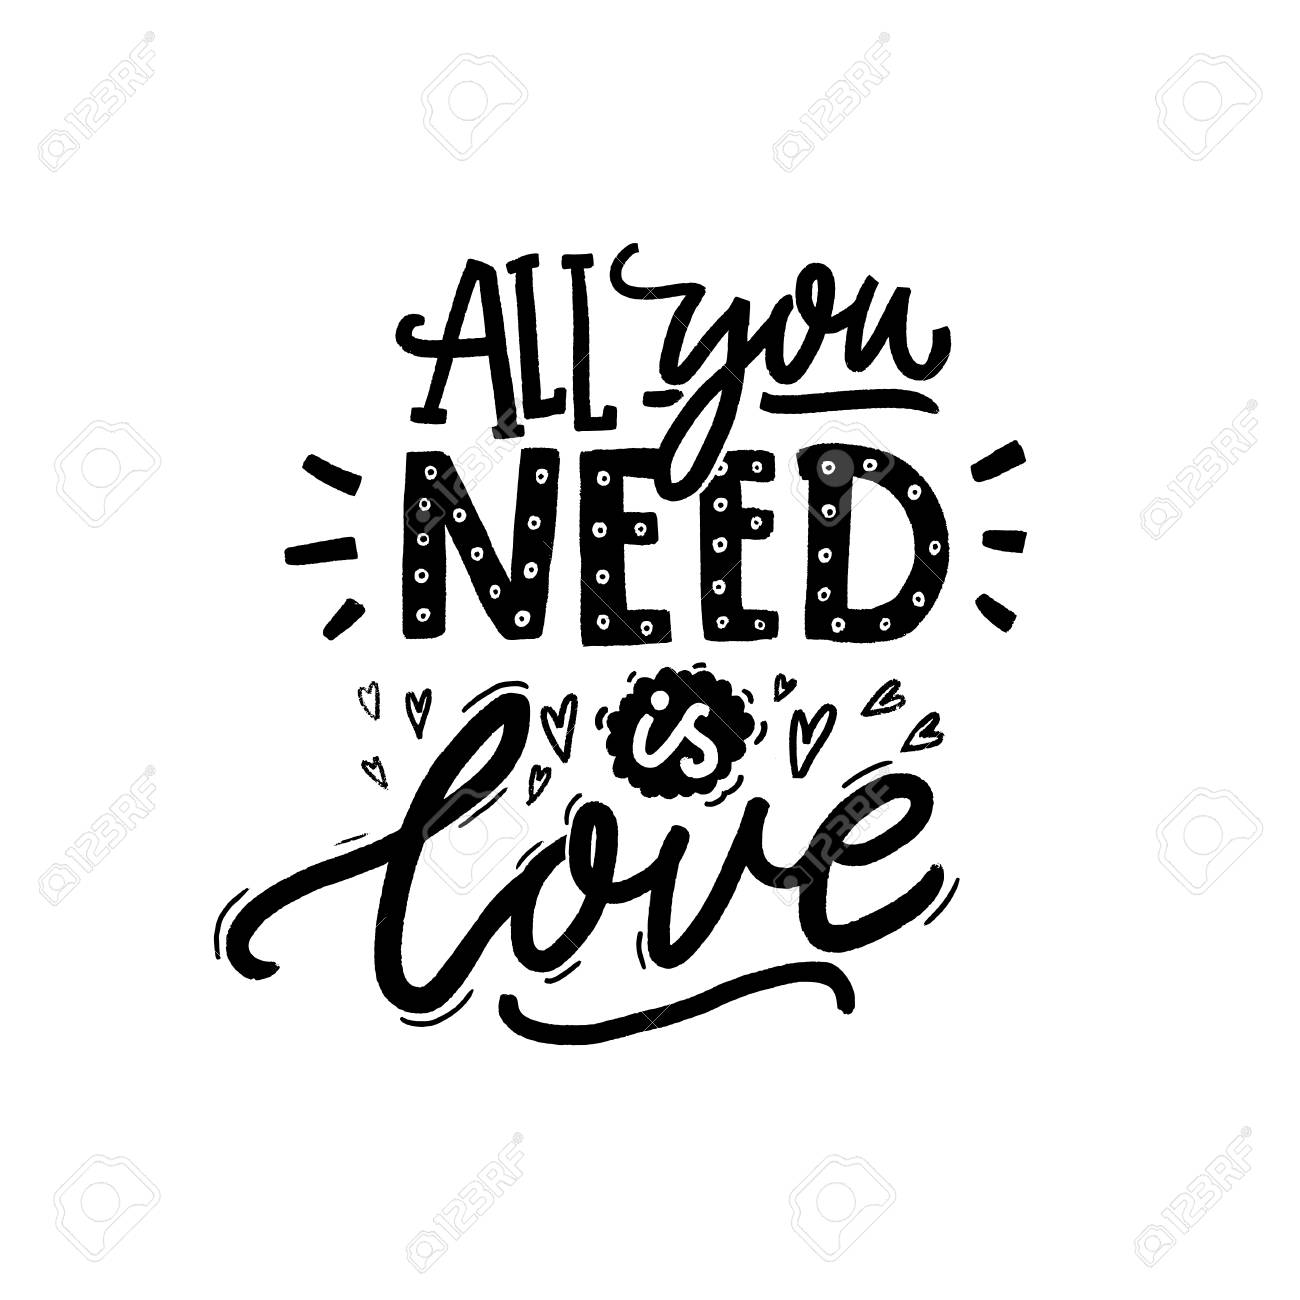 All You Need Is Love Black And White Inscription For Greeting